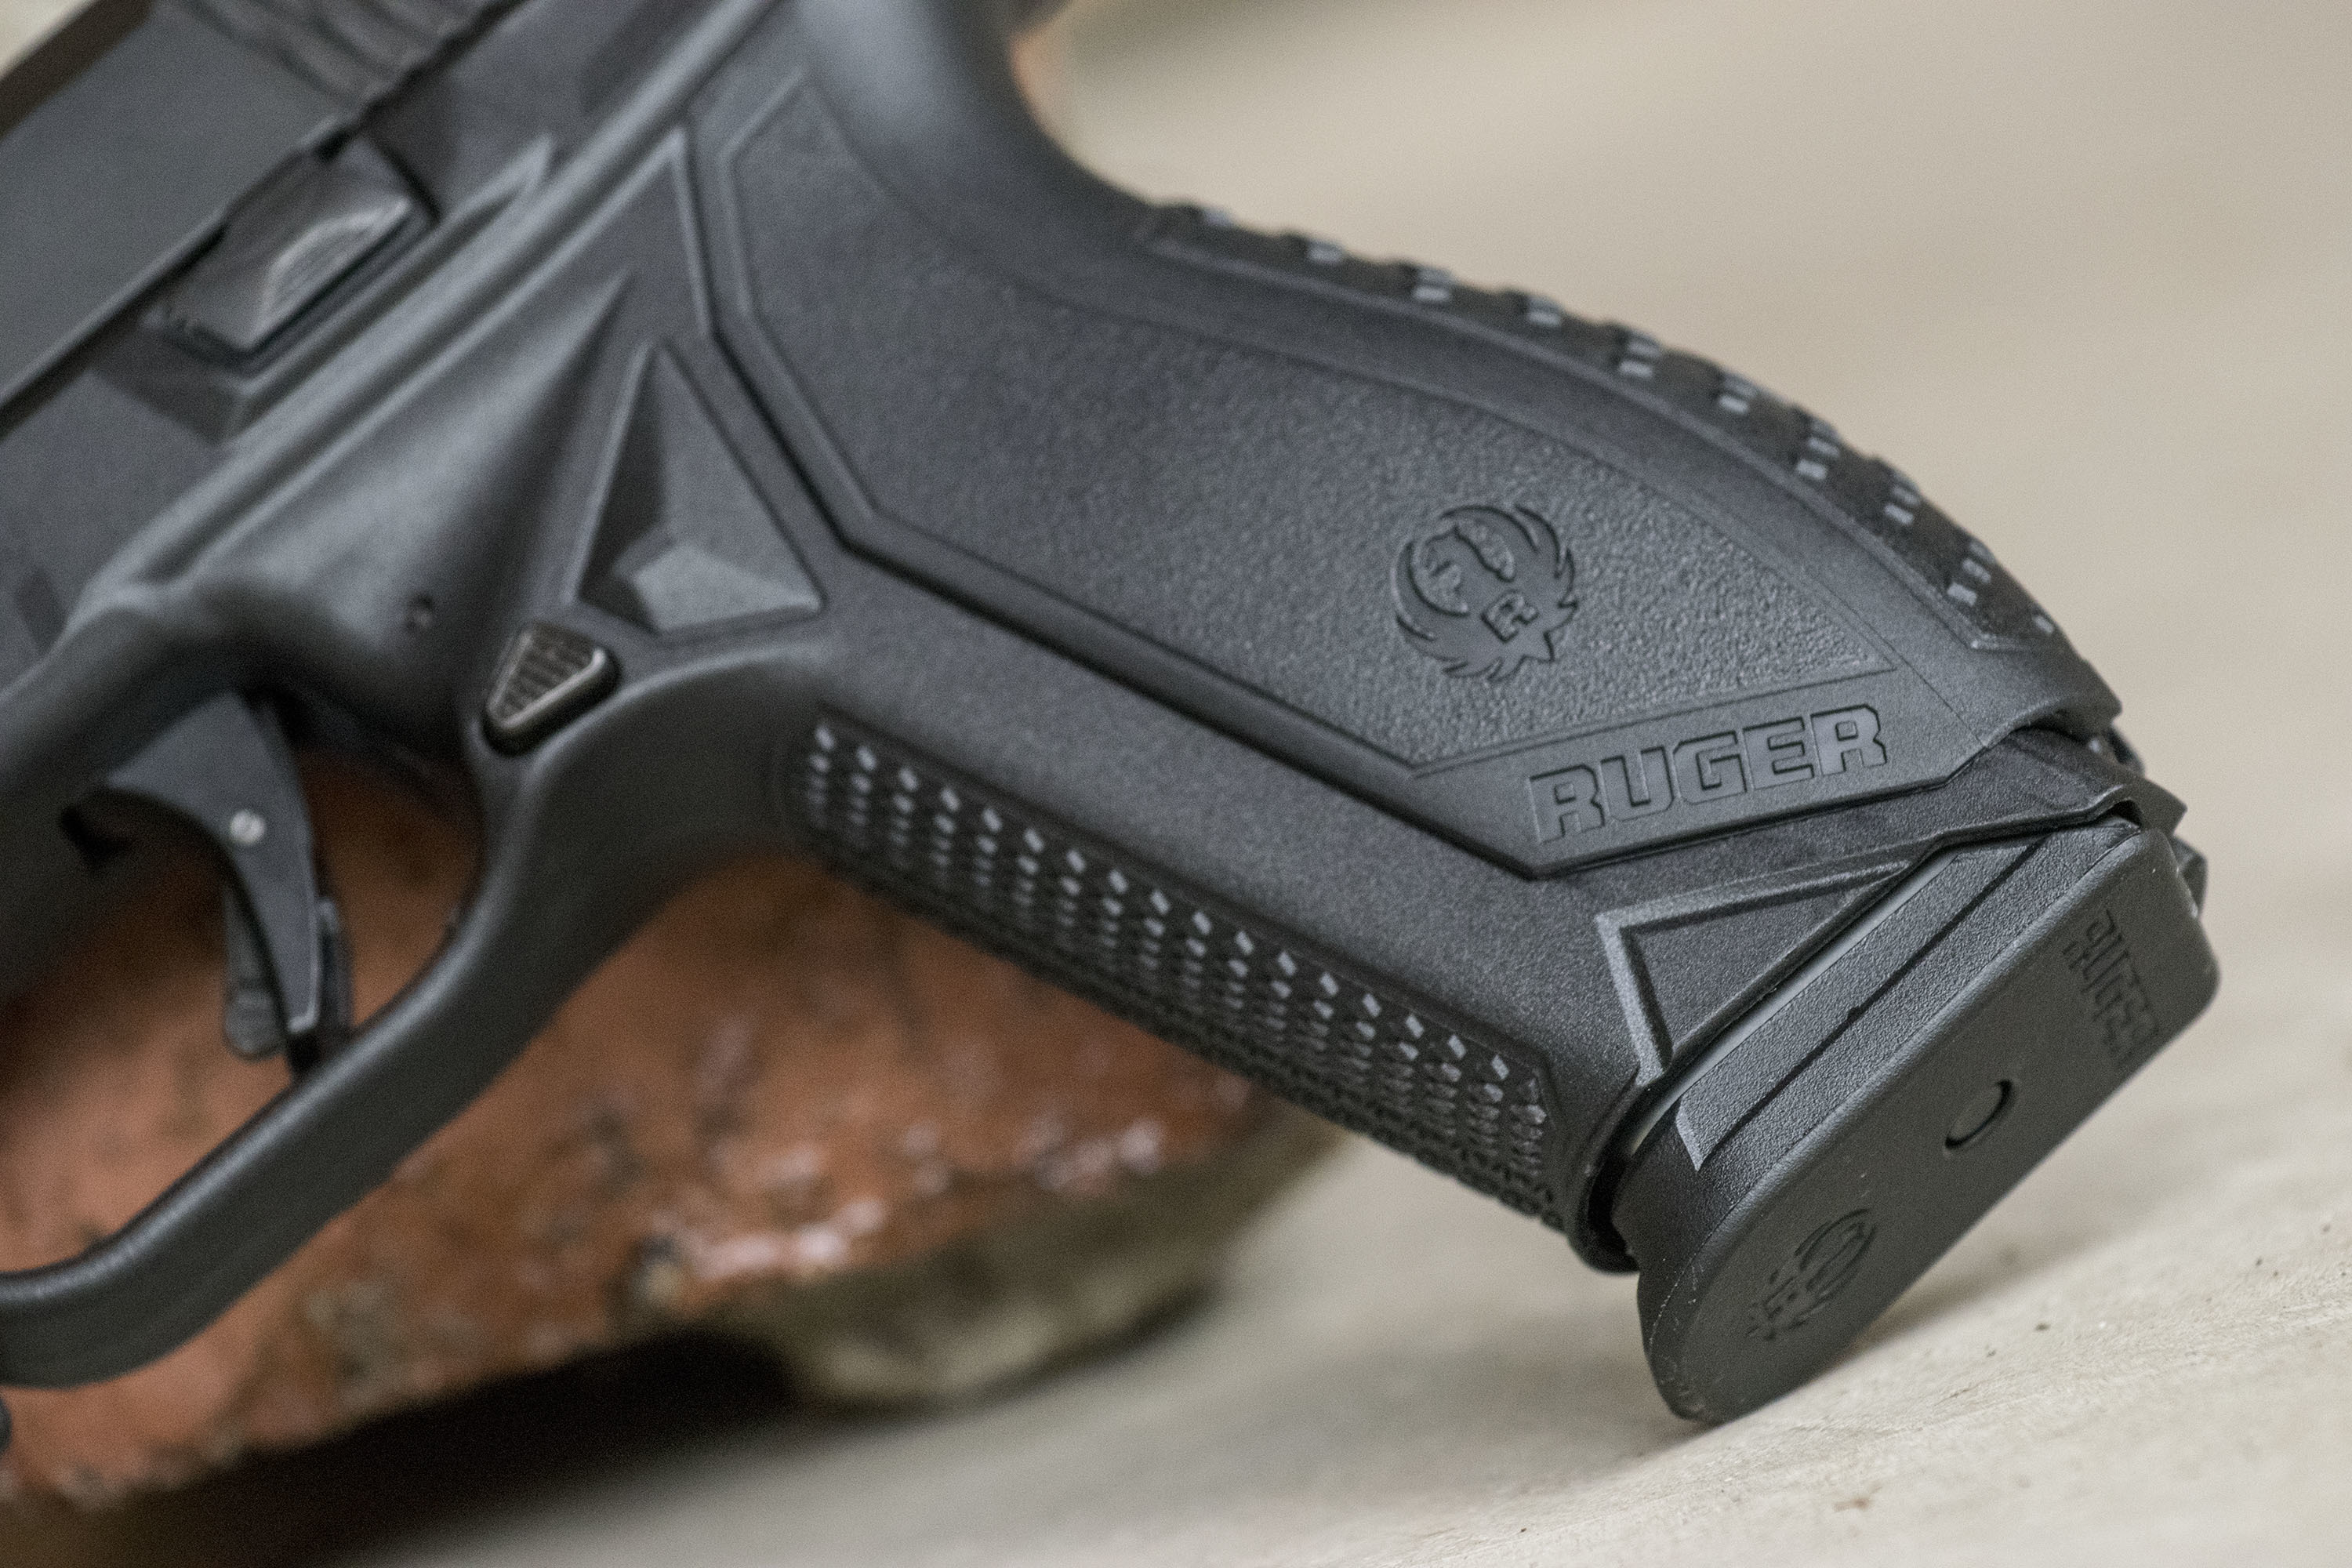 BREAKING: First Look At The Ruger American Pistol | Tactical